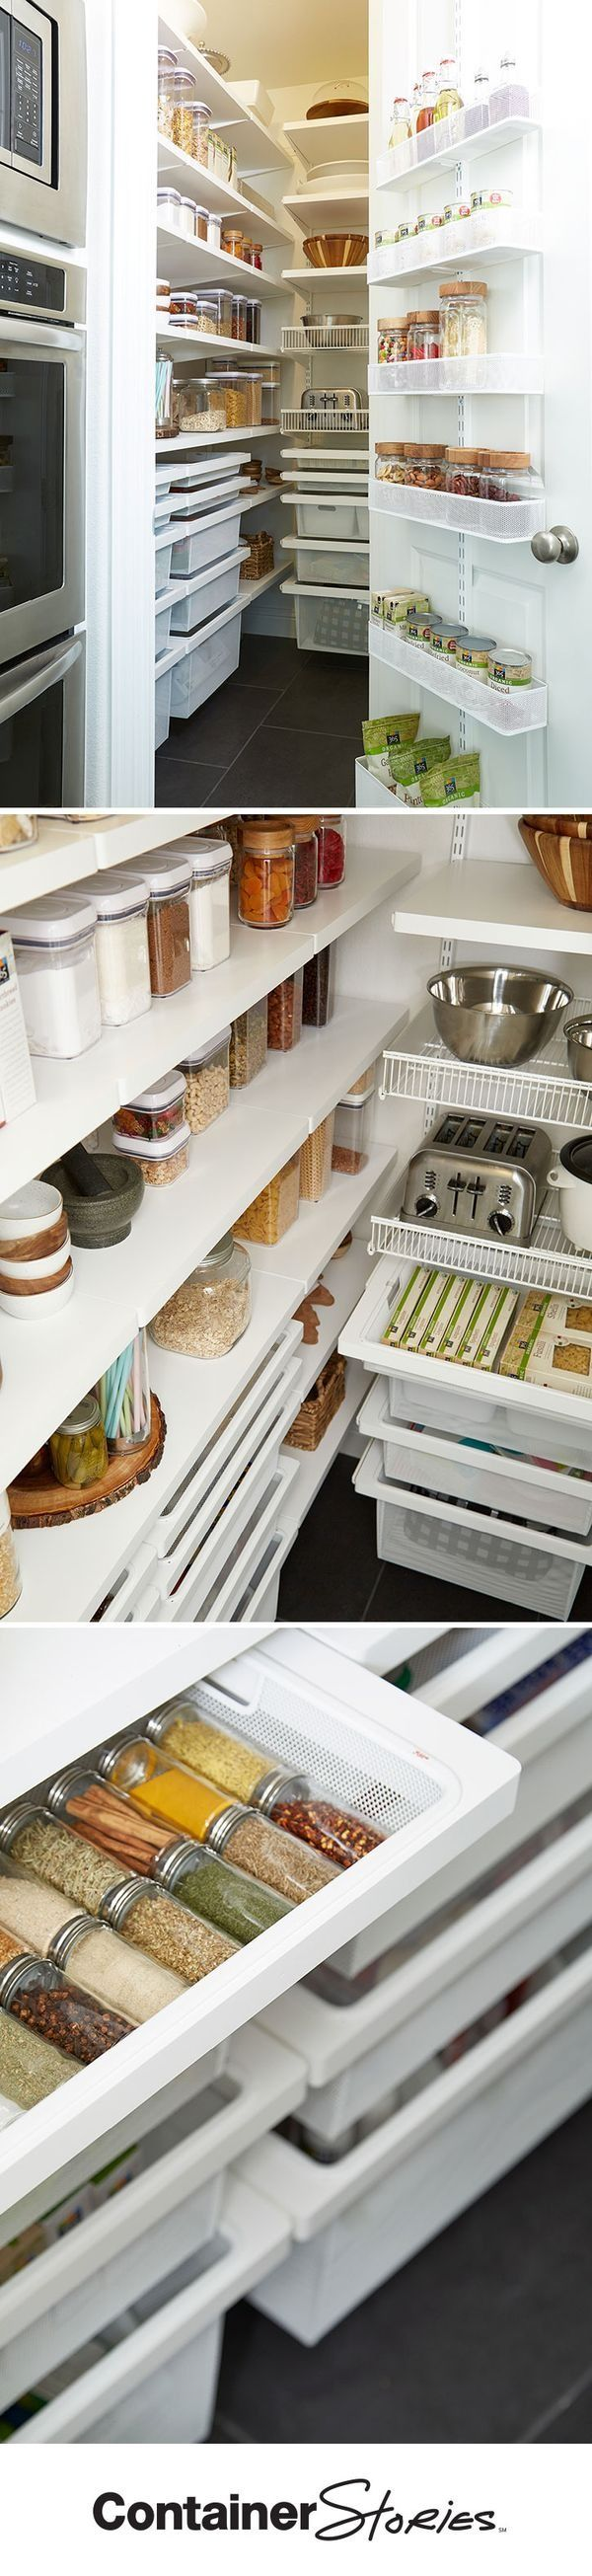 Design Elfa Pantry 55 best elfa pantry images on pinterest container store custom from an utility door wall rack to decor drawers shelves and shelf